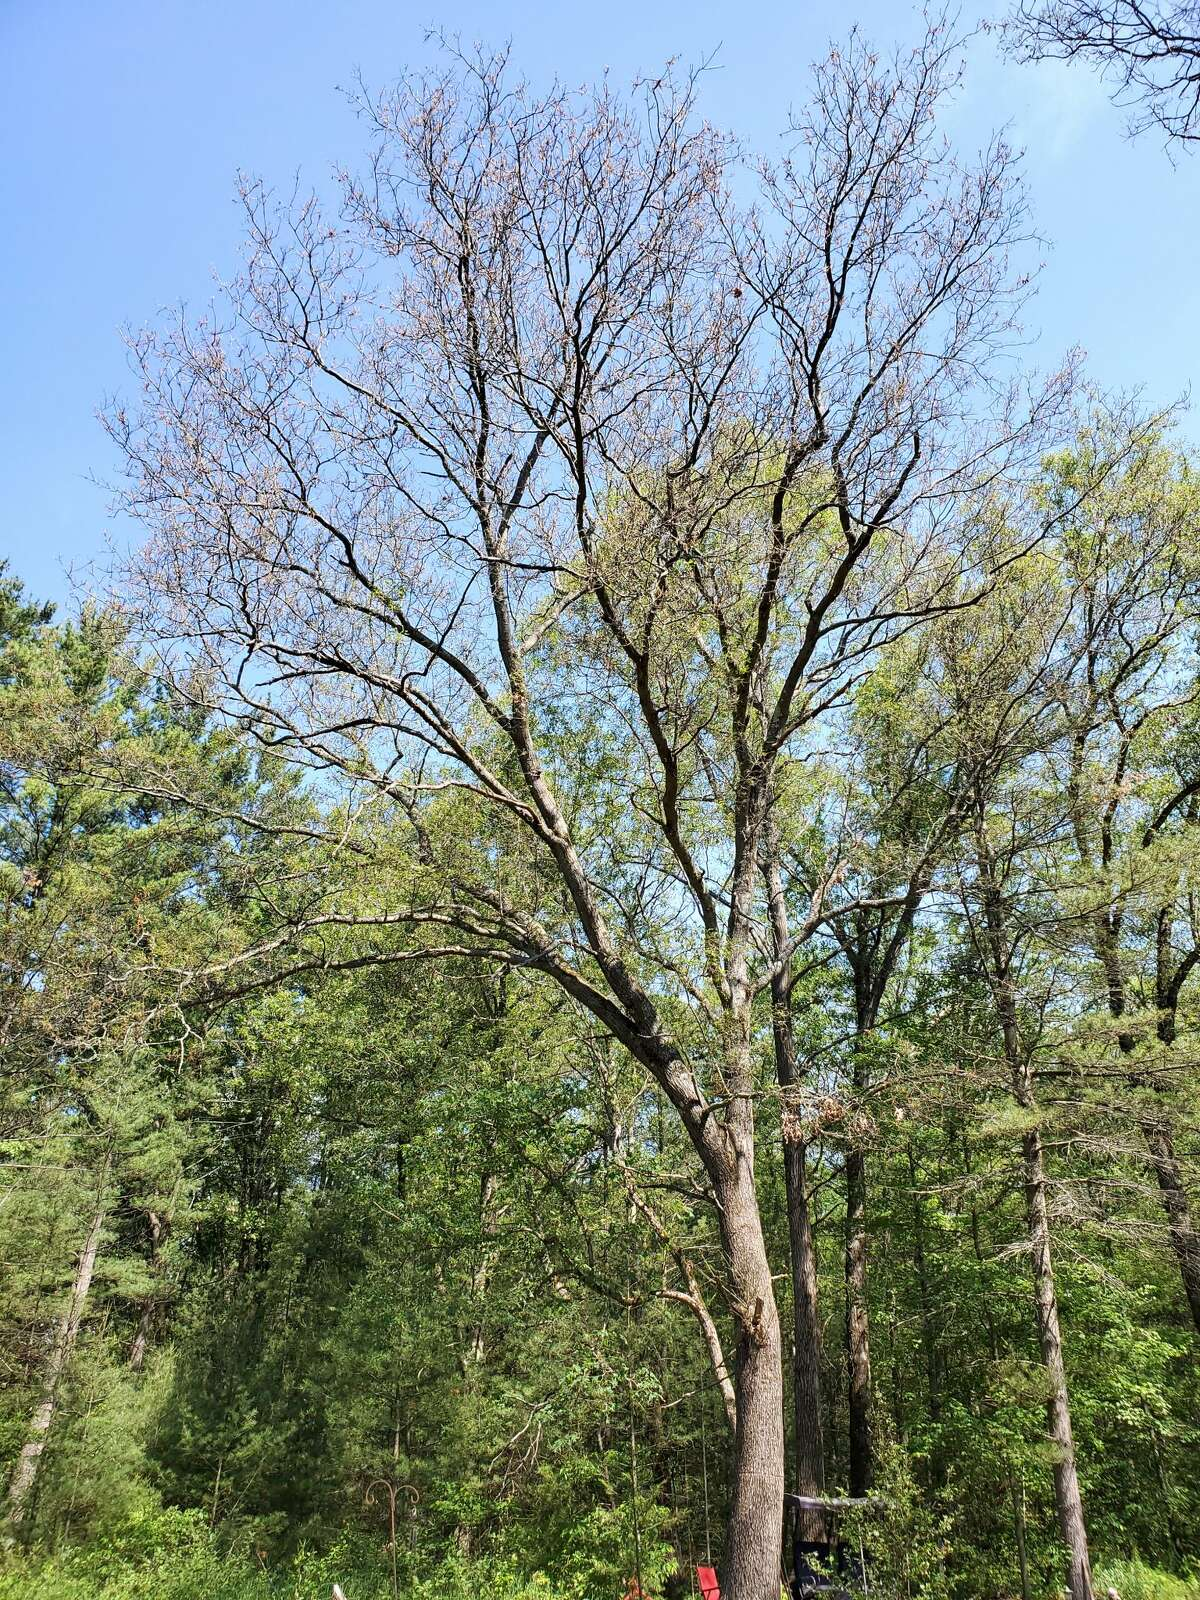 This tree on Mecosta County resident April Overzet's property has been completely defoliated by gypsy moth caterpillars feeding on the leaves. DNR experts say that the leaves of the effected trees will return in the next couple of weeks.